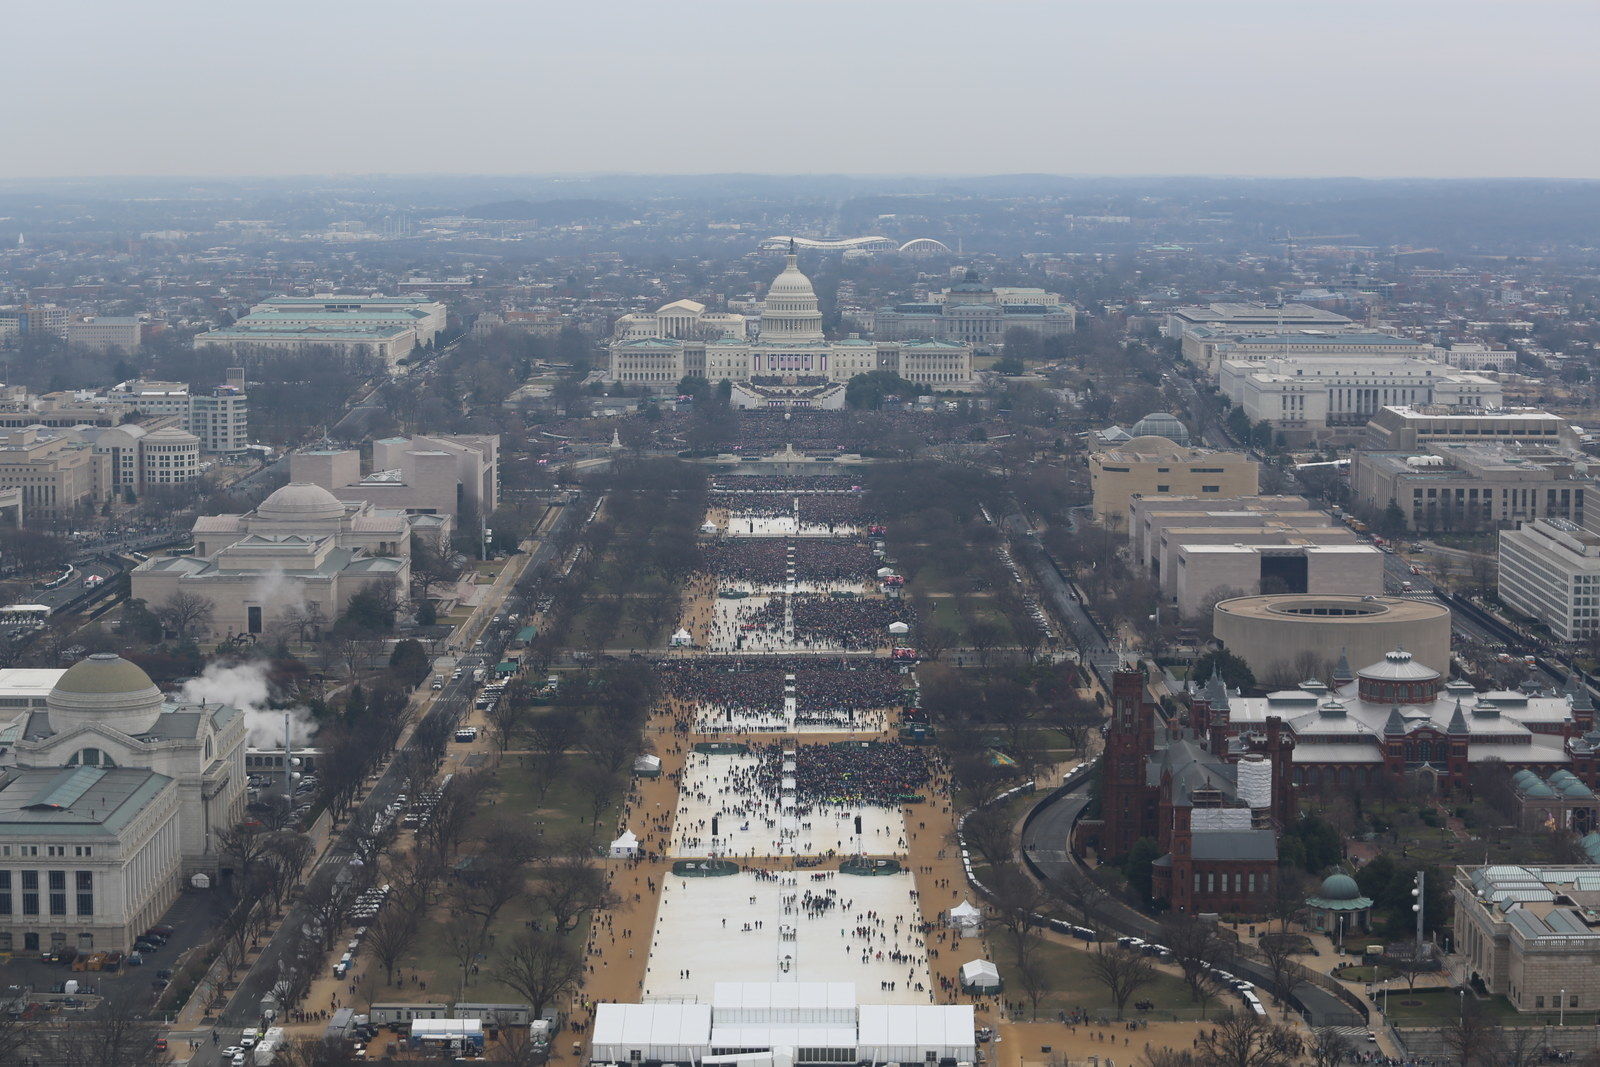 Crowds at the US Inauguration Jan 21 2017